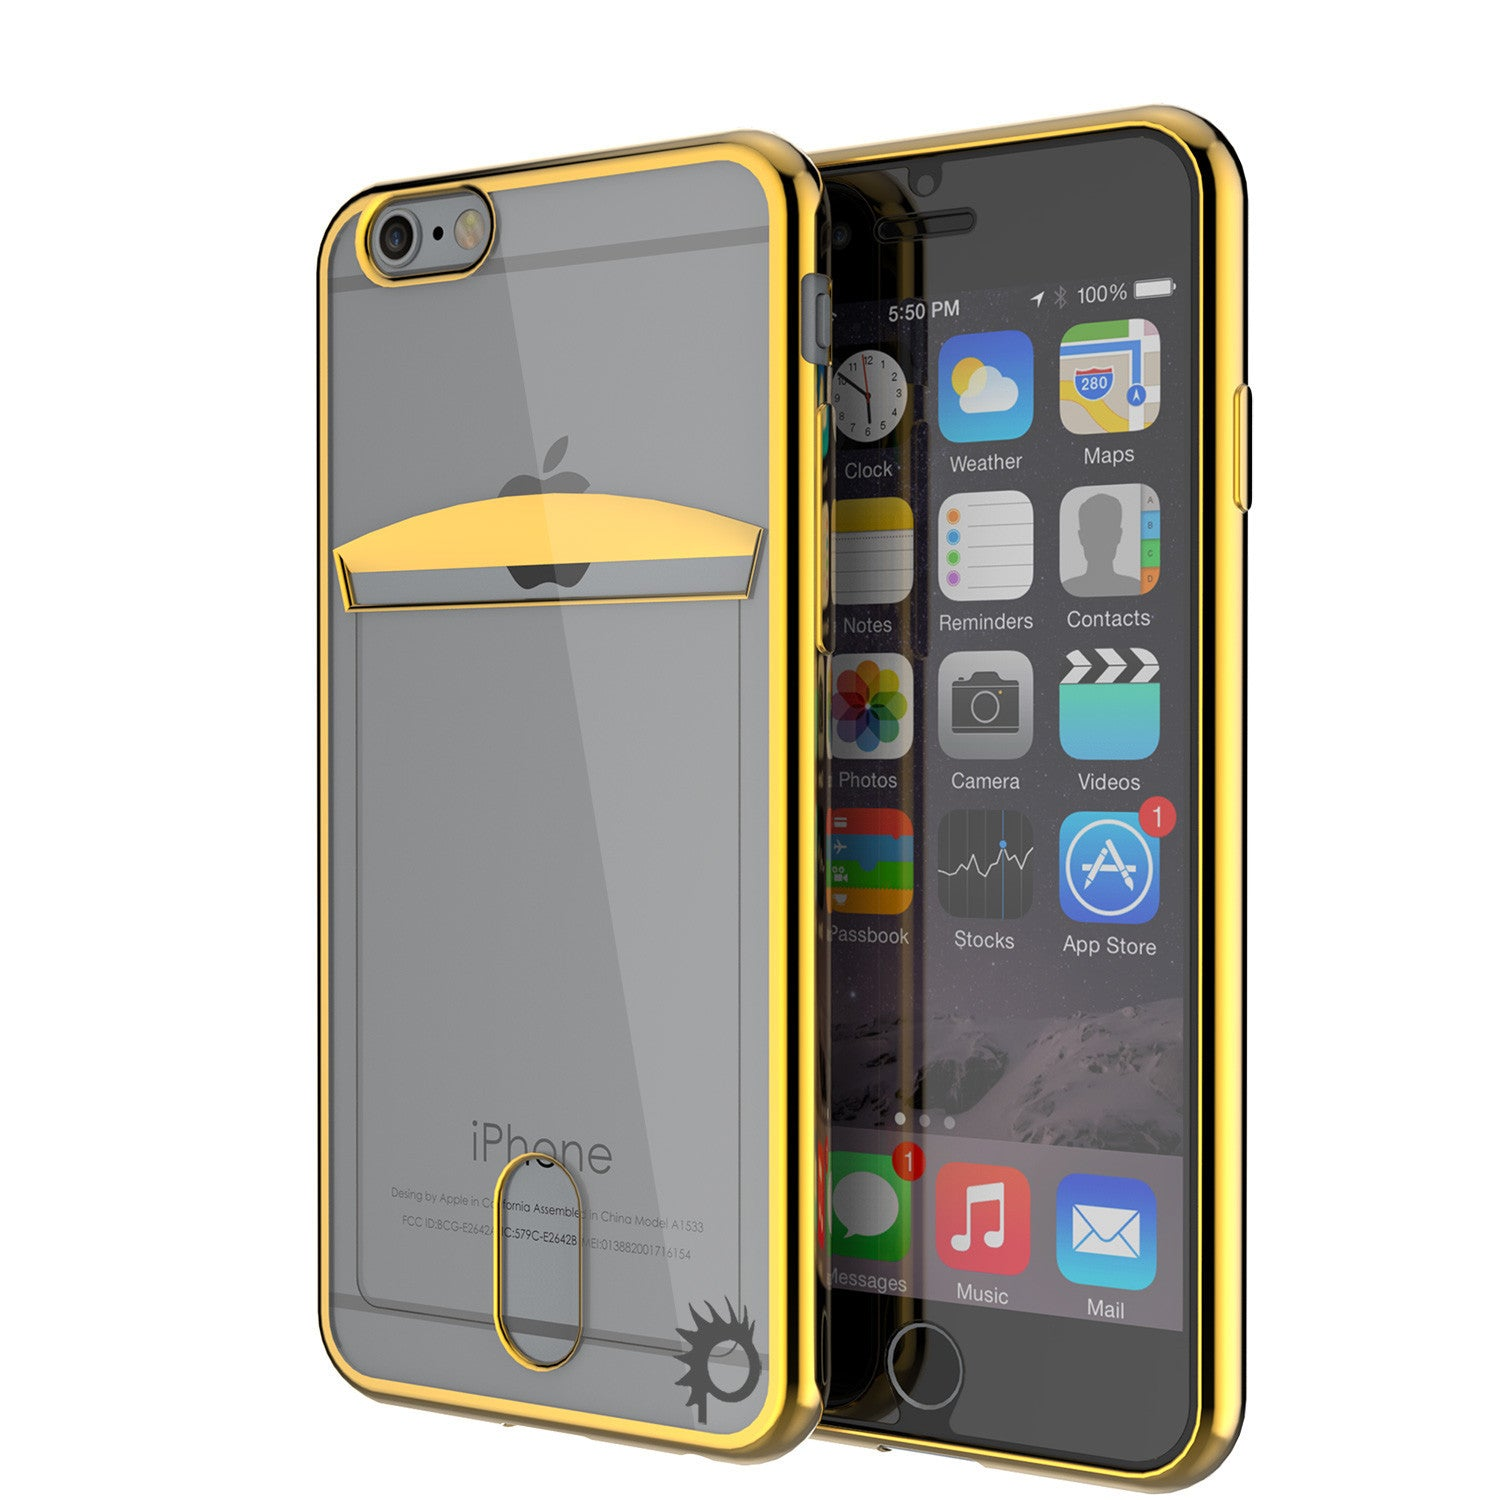 iPhone 6s+ Plus/6+ Plus Case, PUNKCASE® LUCID Gold Series | Card Slot | SHIELD Screen Protector